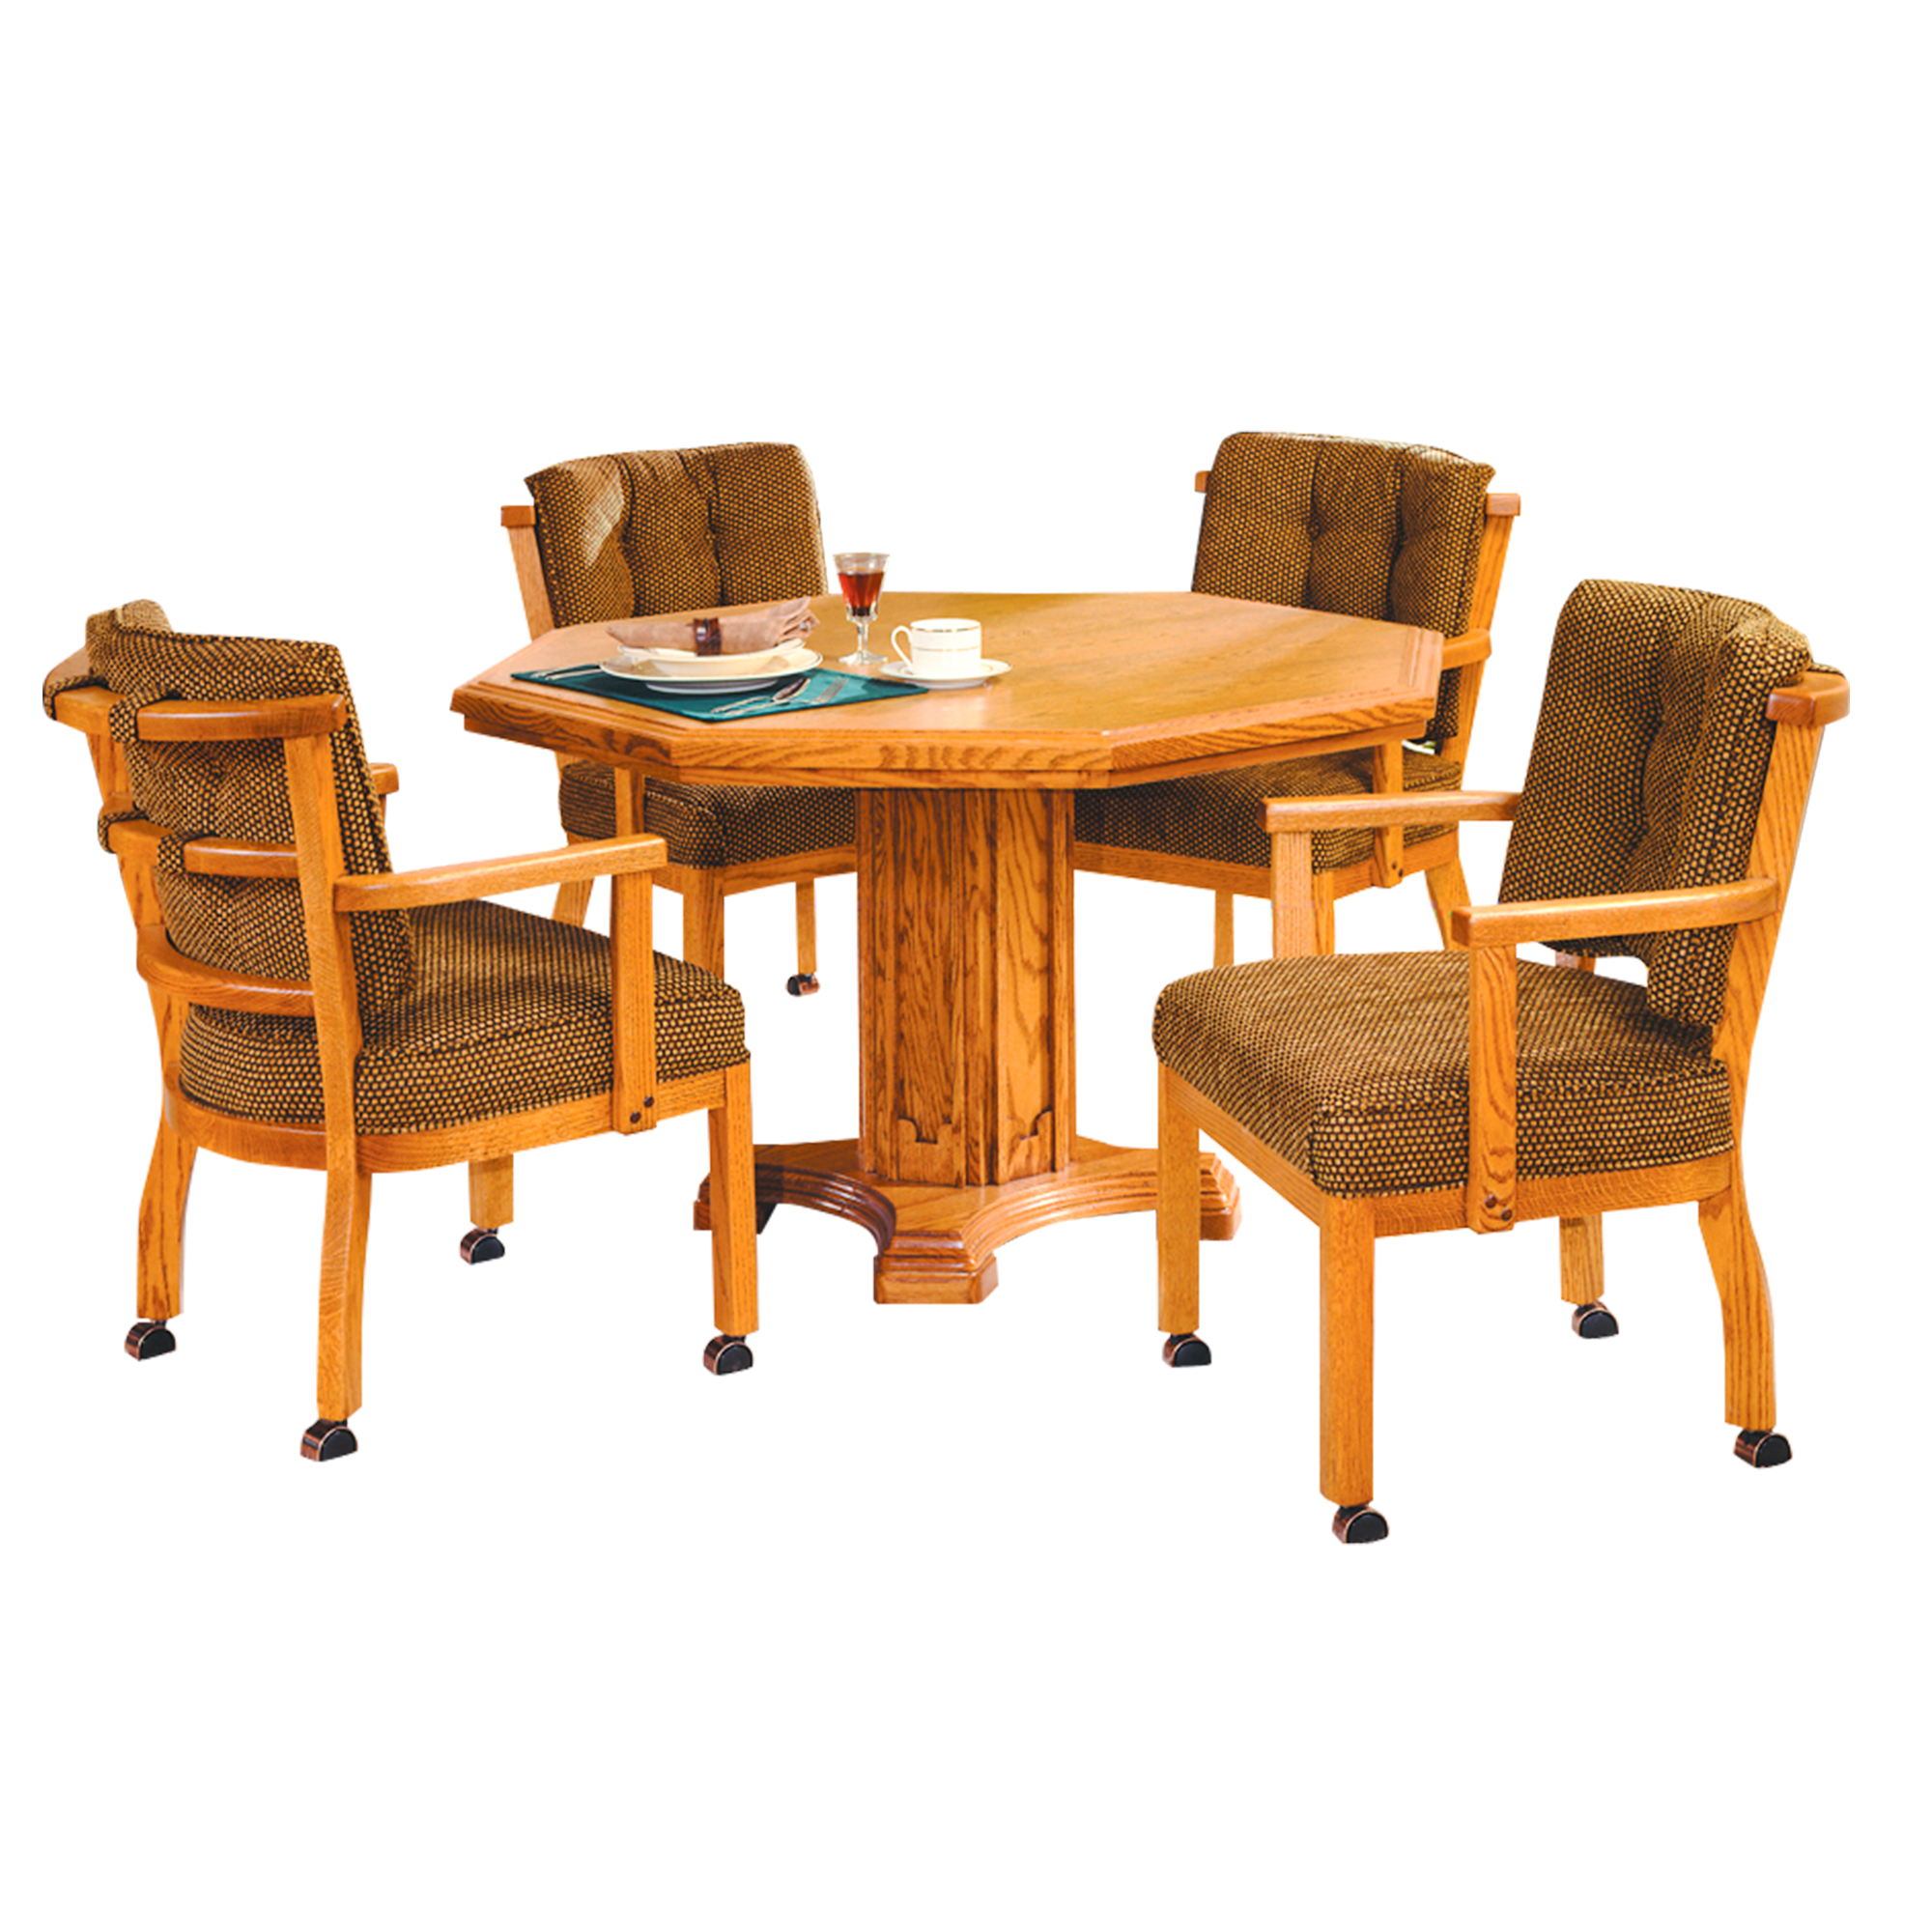 Fabulous T5224 Casual Dining Table C1506 4Lc Caster Chairs Download Free Architecture Designs Rallybritishbridgeorg